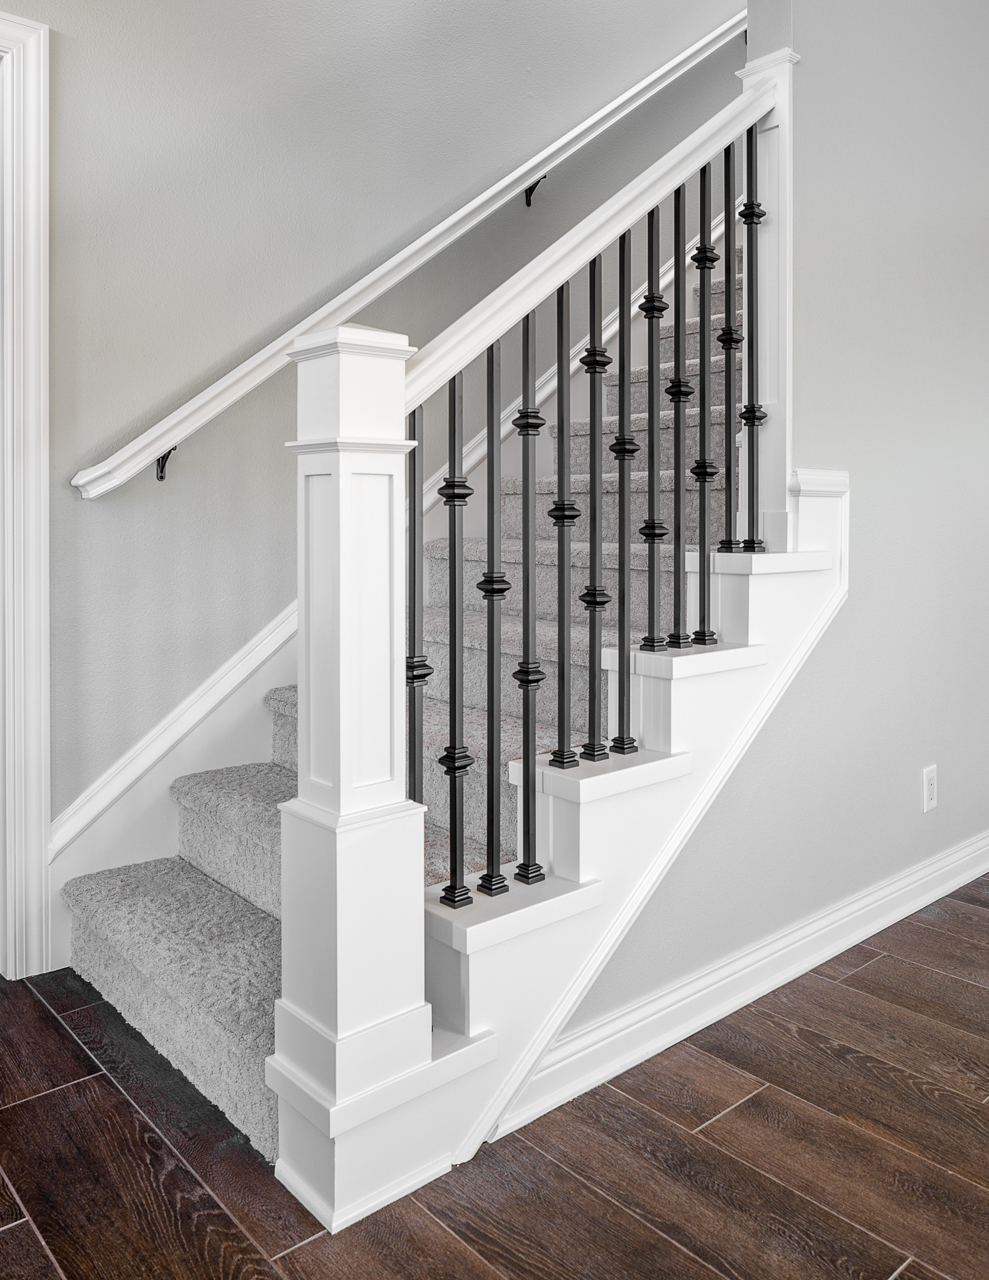 Great stair system